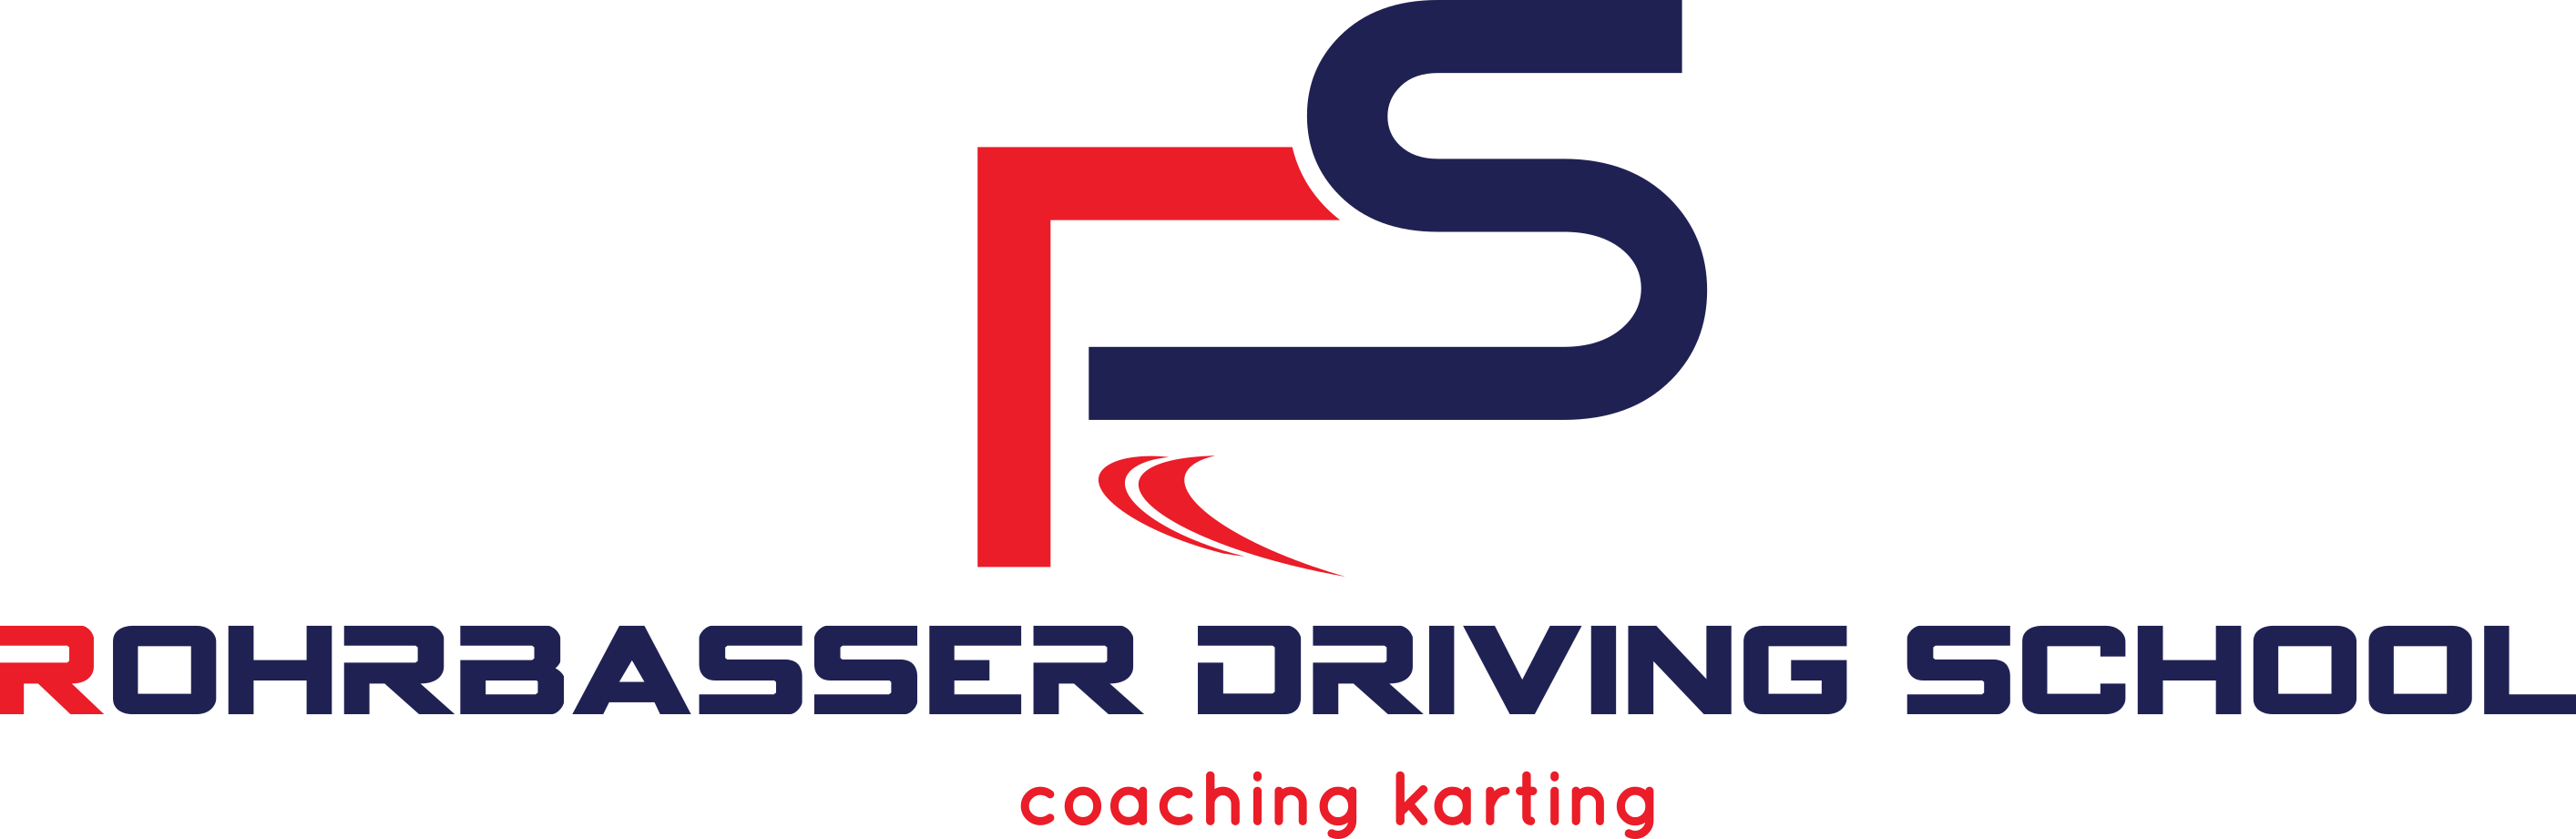 Rohrbasser Driving School - coaching karting - logo